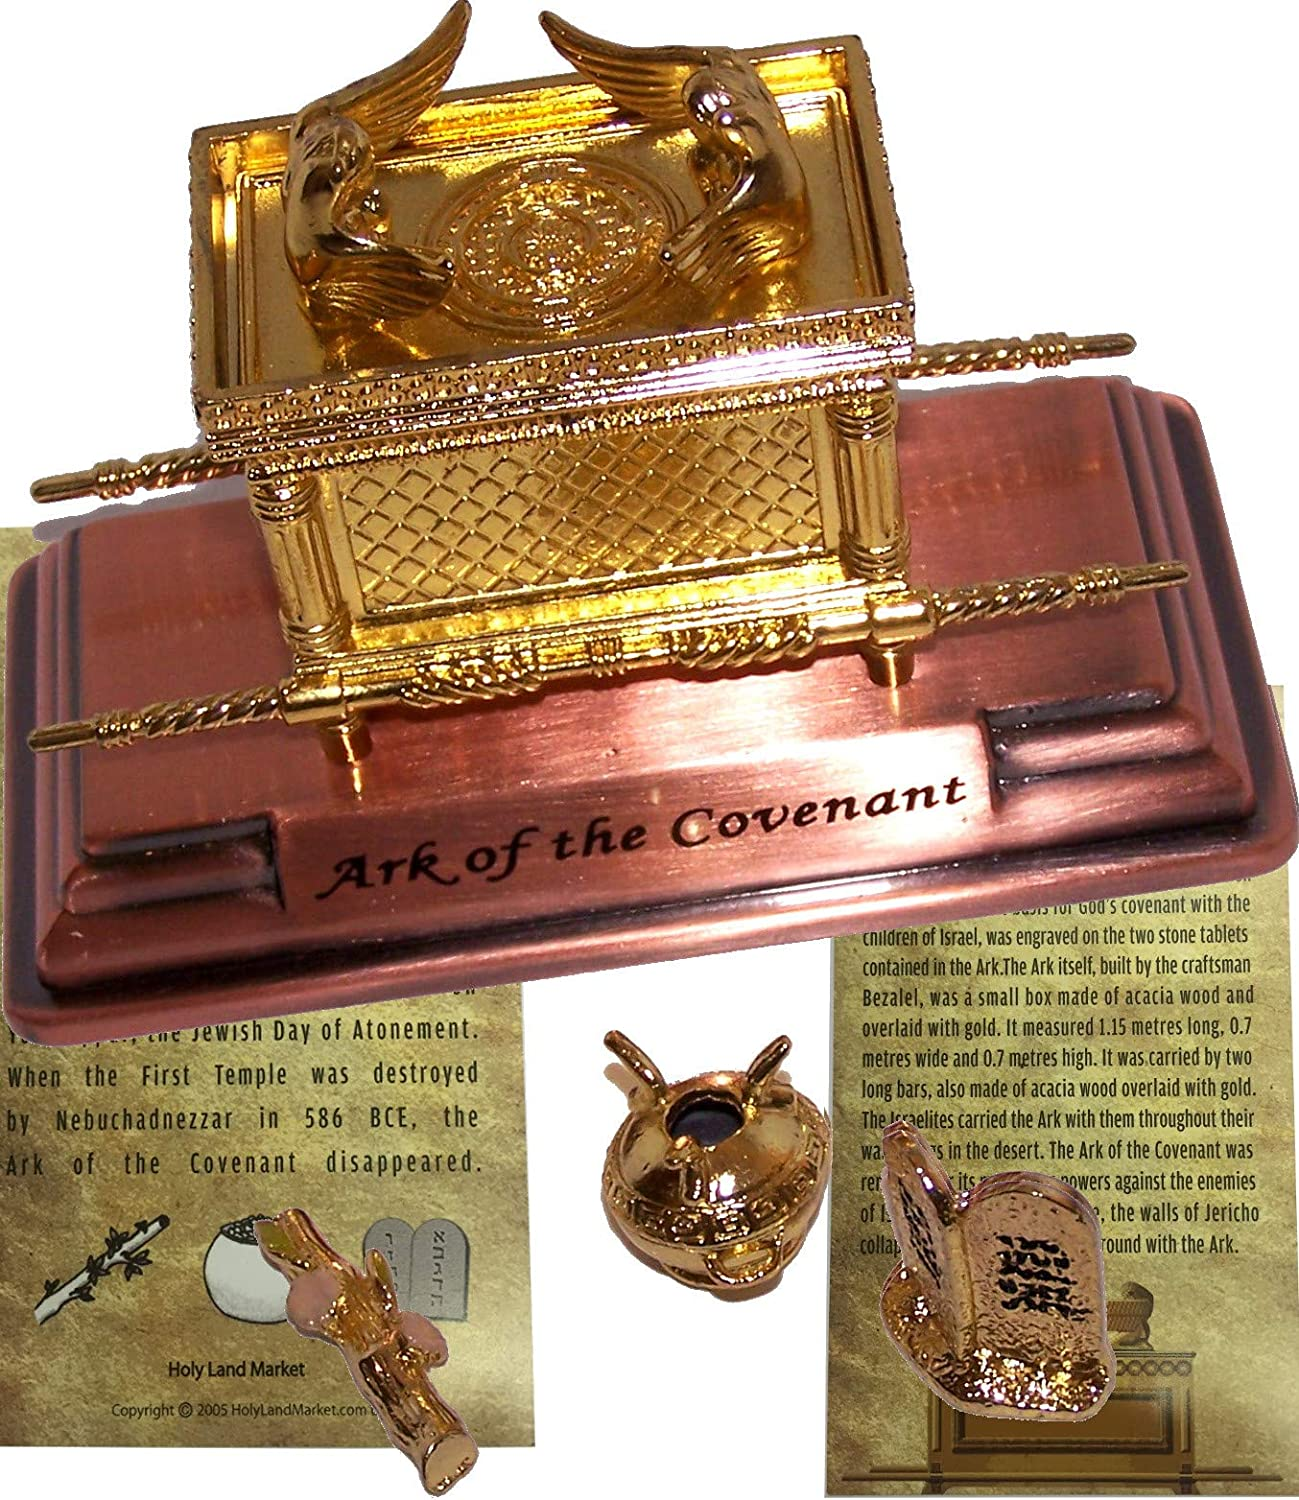 Holy Land Market Medium Size Ark of The Covenant with Ark Contents.